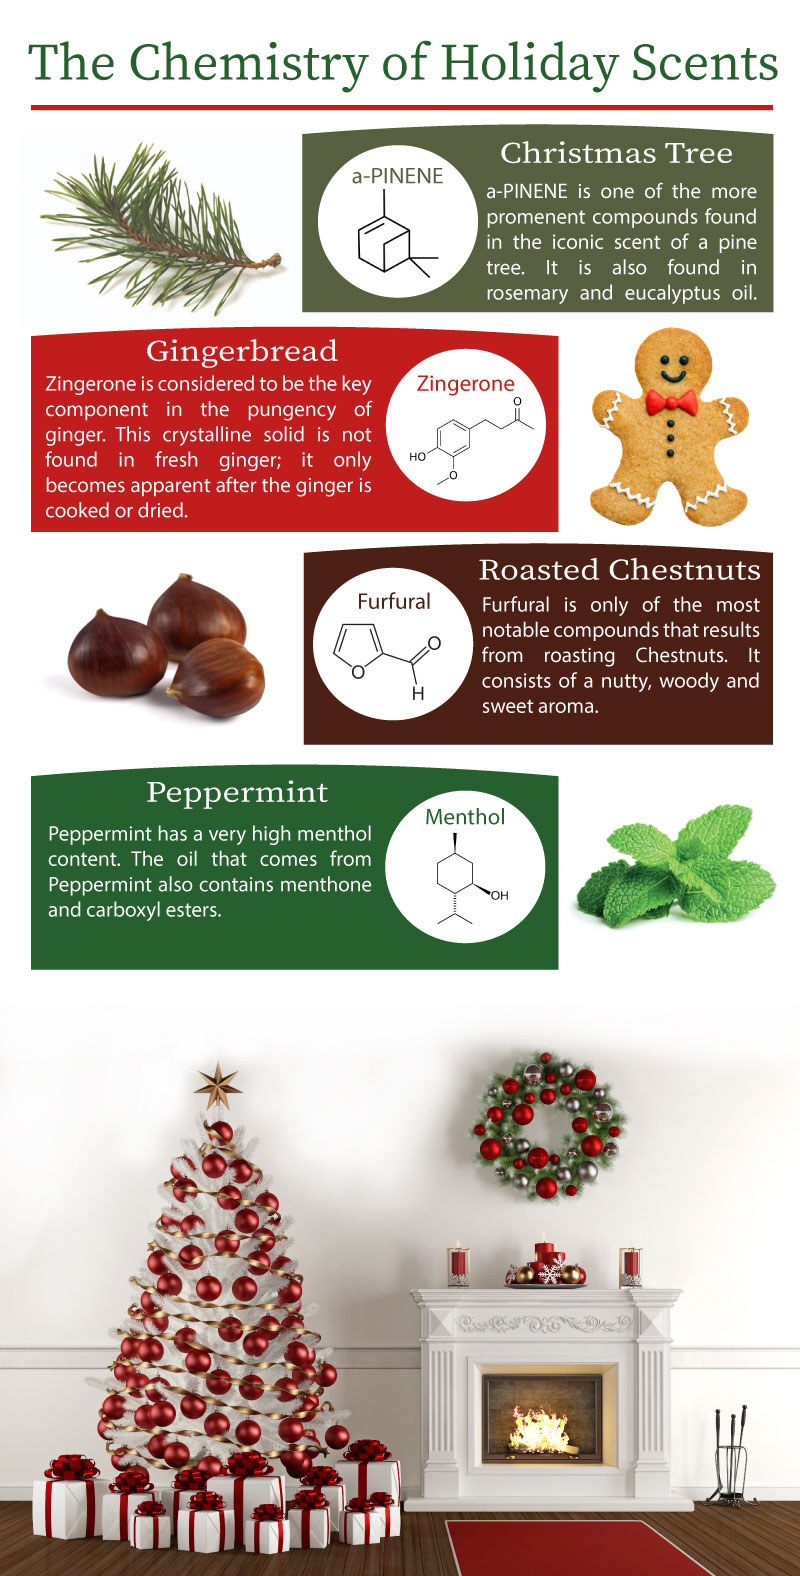 the-chemistry-of-holiday-scents.jpg